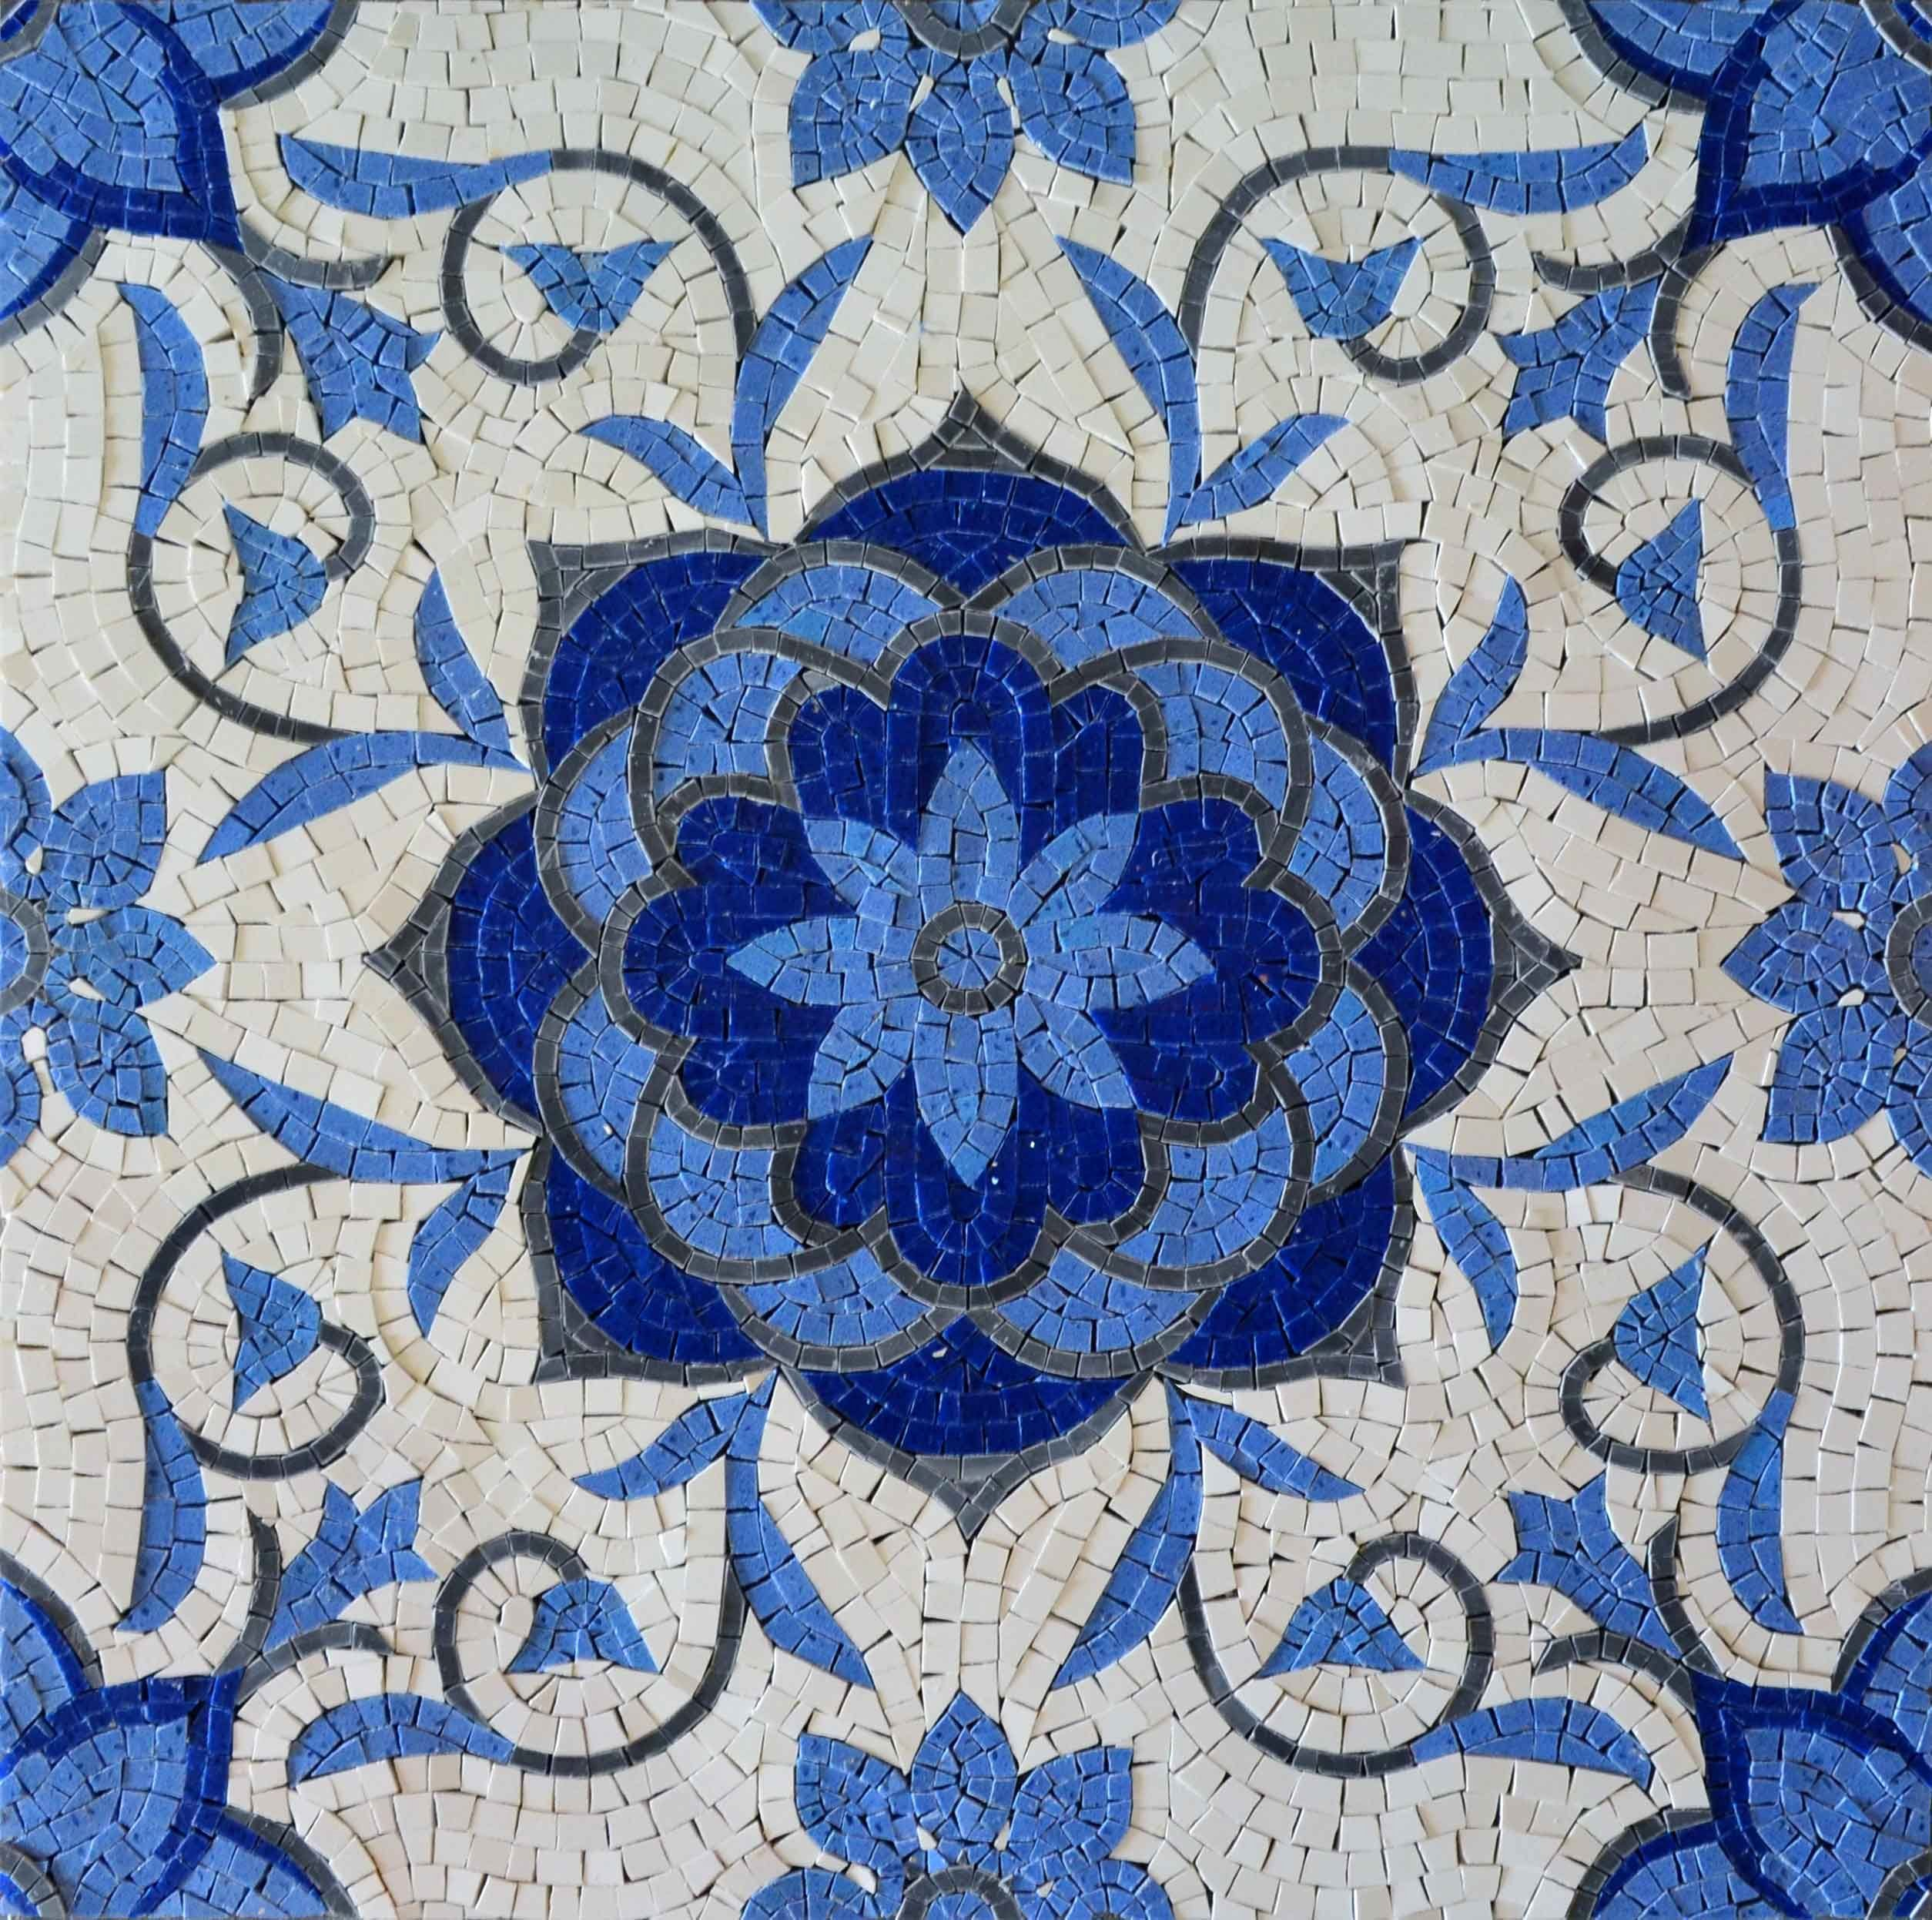 Mosaic Flower Designs New Beautiful Geometric Design Marble Mosaic Tiles with